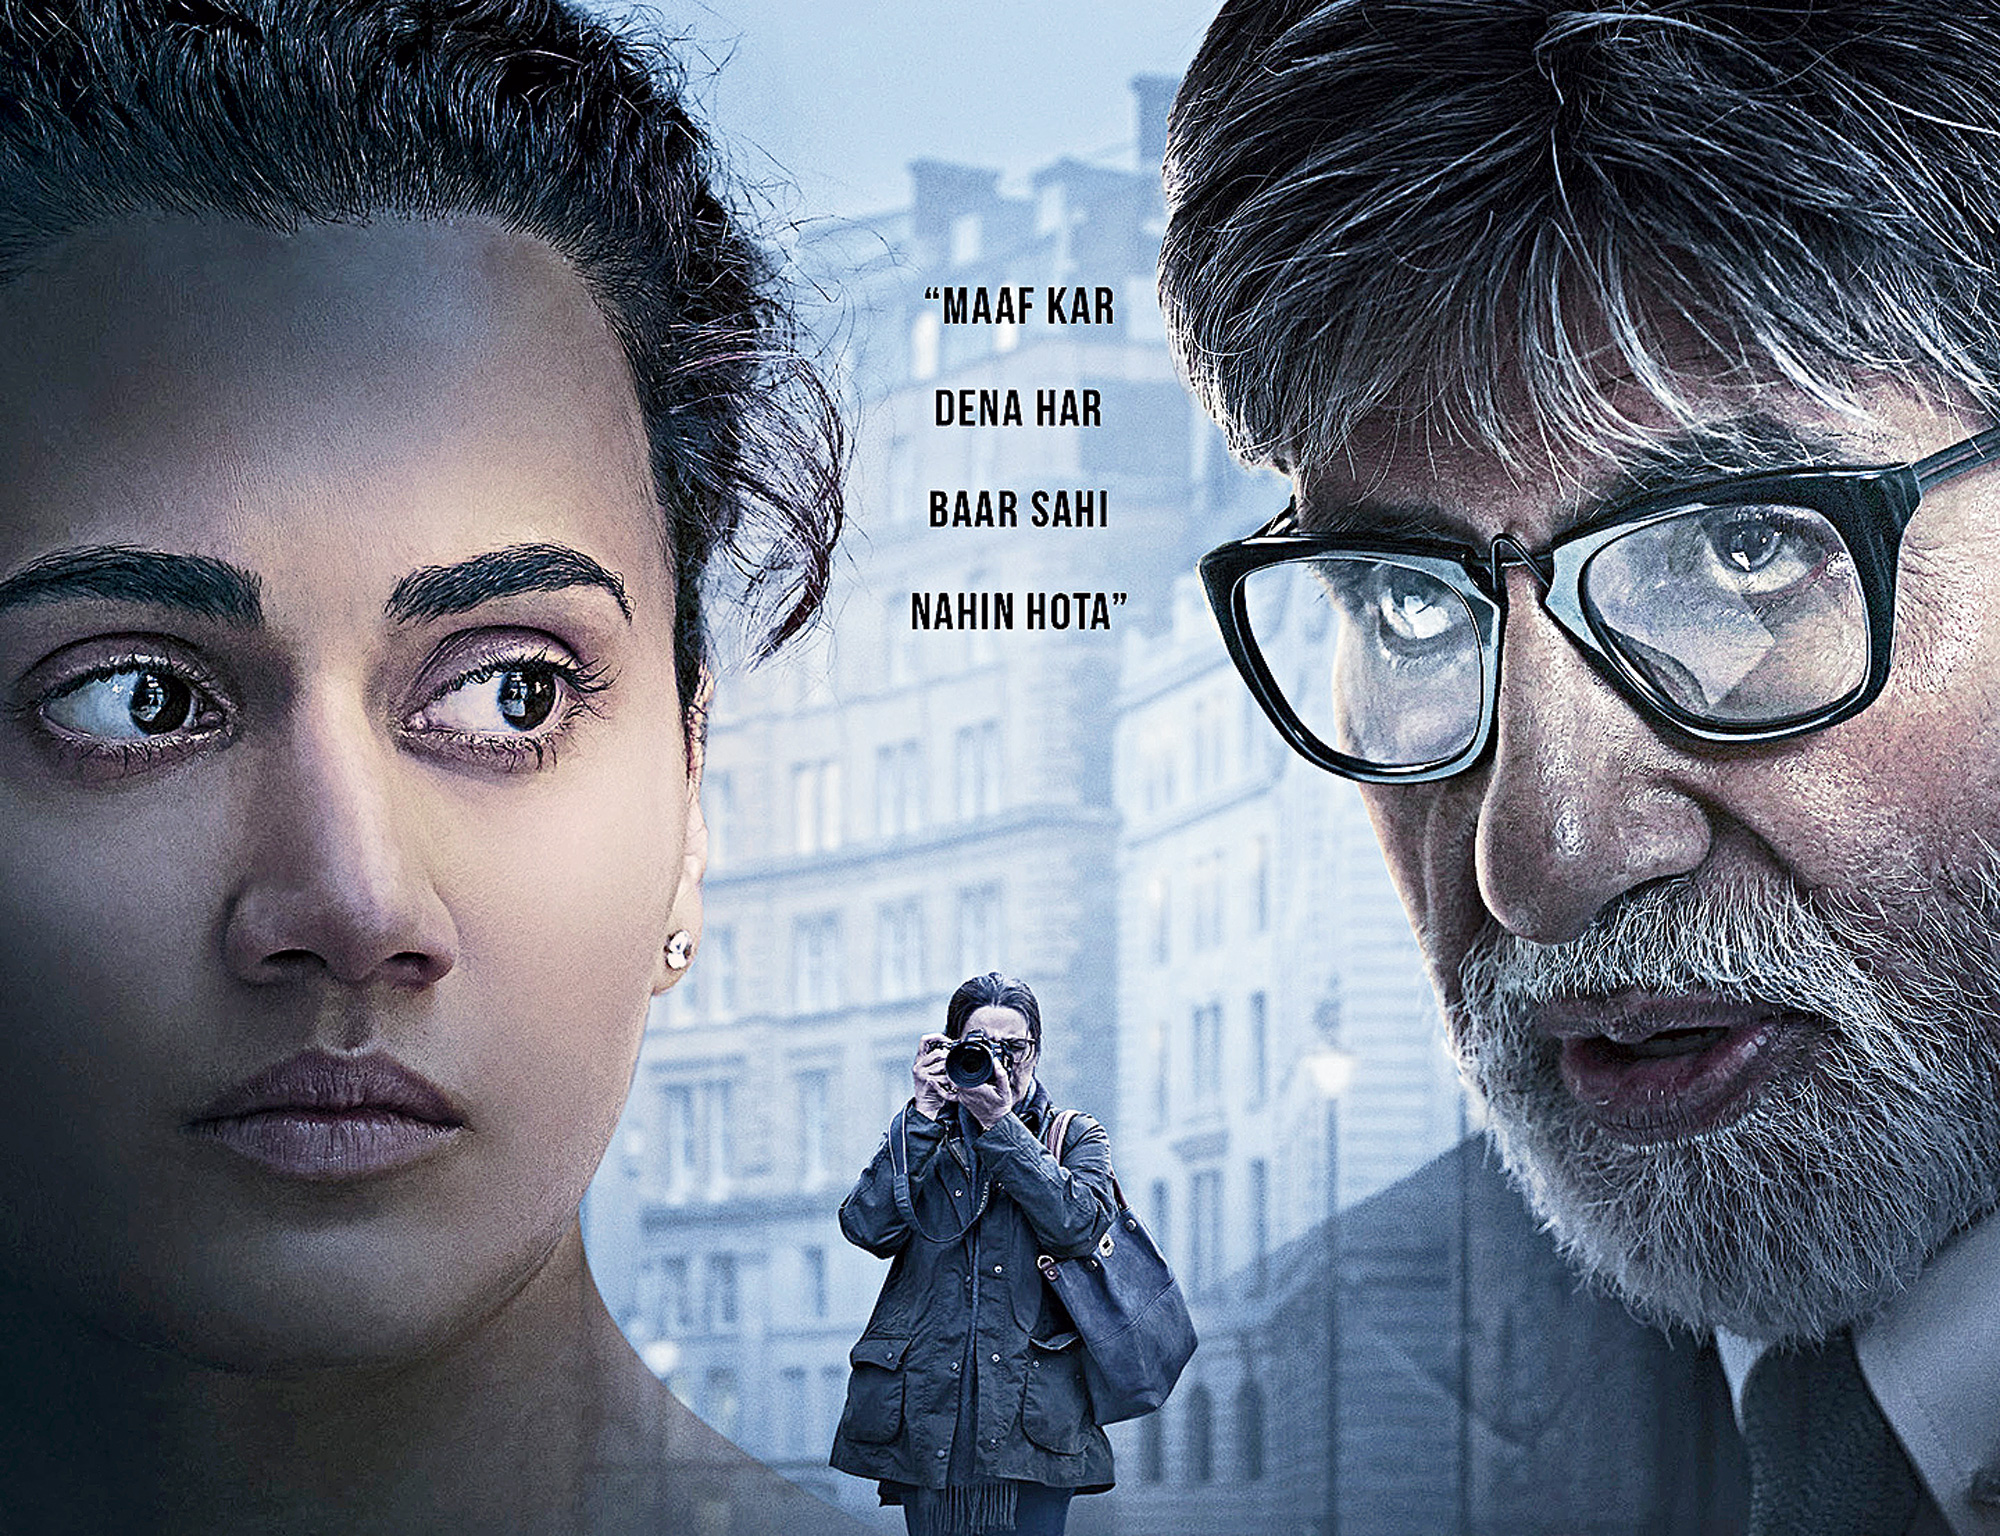 Badla is an edge-of-the-seat watch